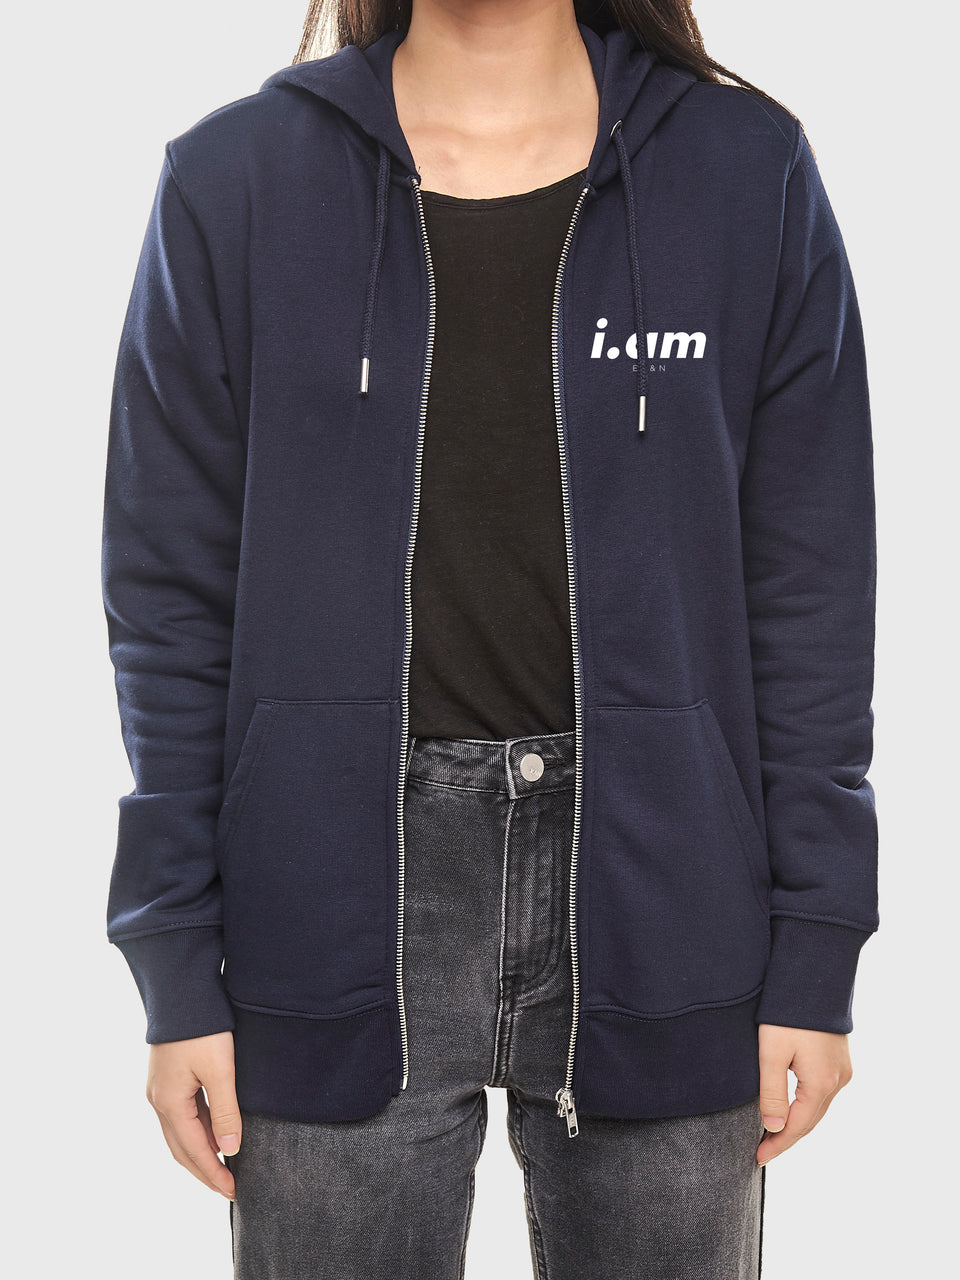 Am.bisch.ous - Navy - Unisex zip up hoodie